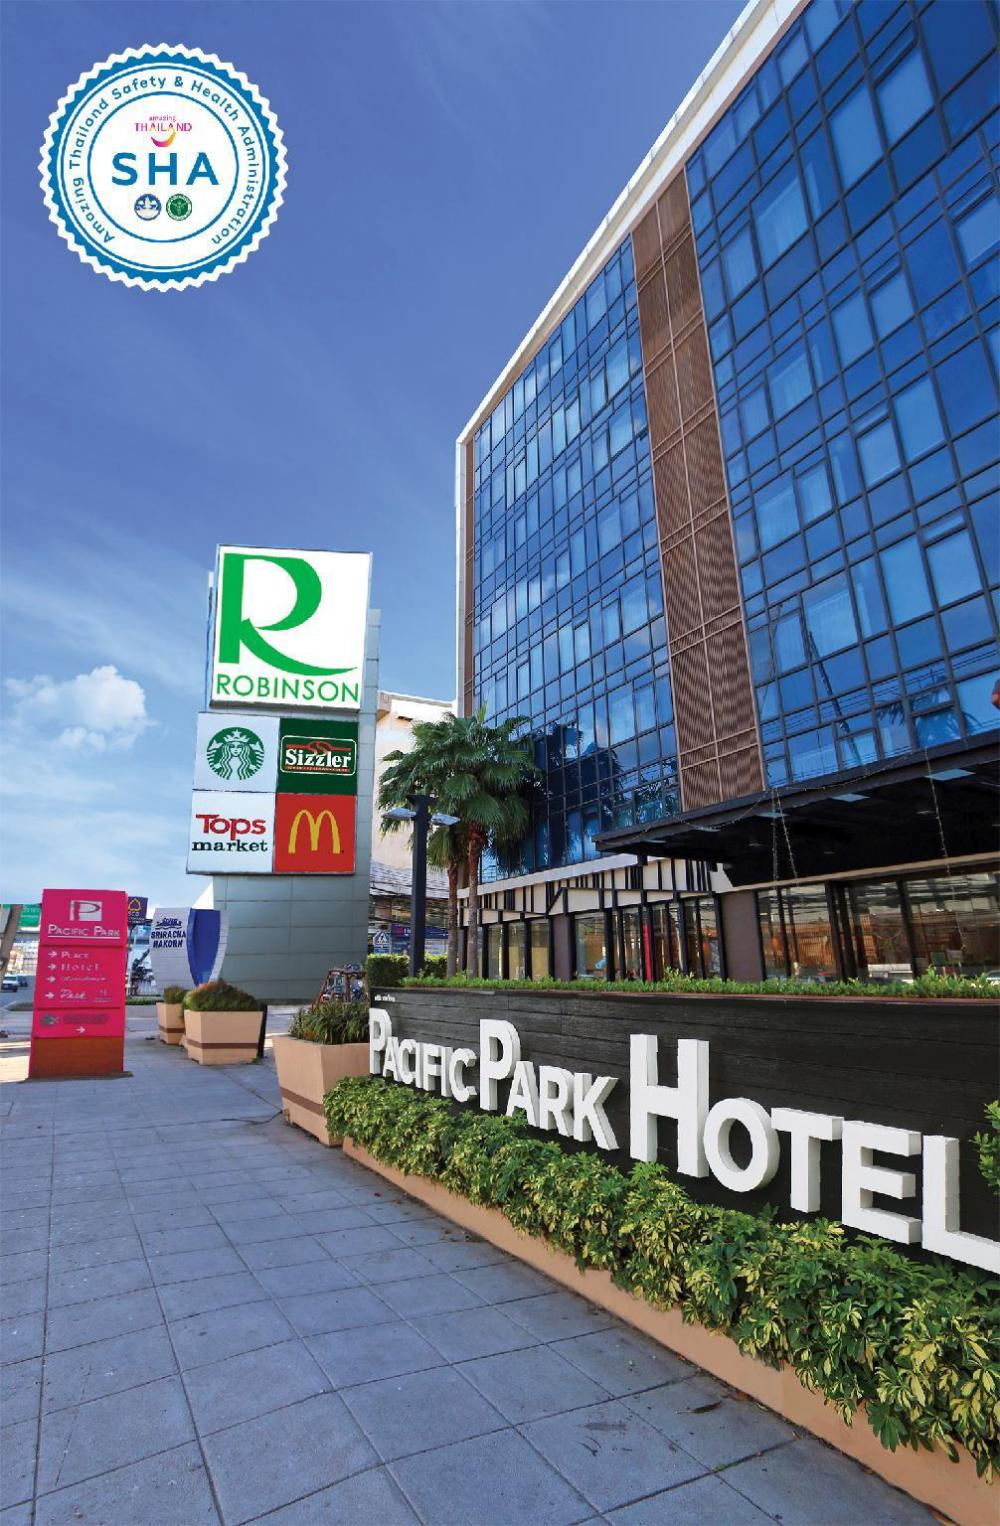 Pacific Park Hotel (SHA Certified)